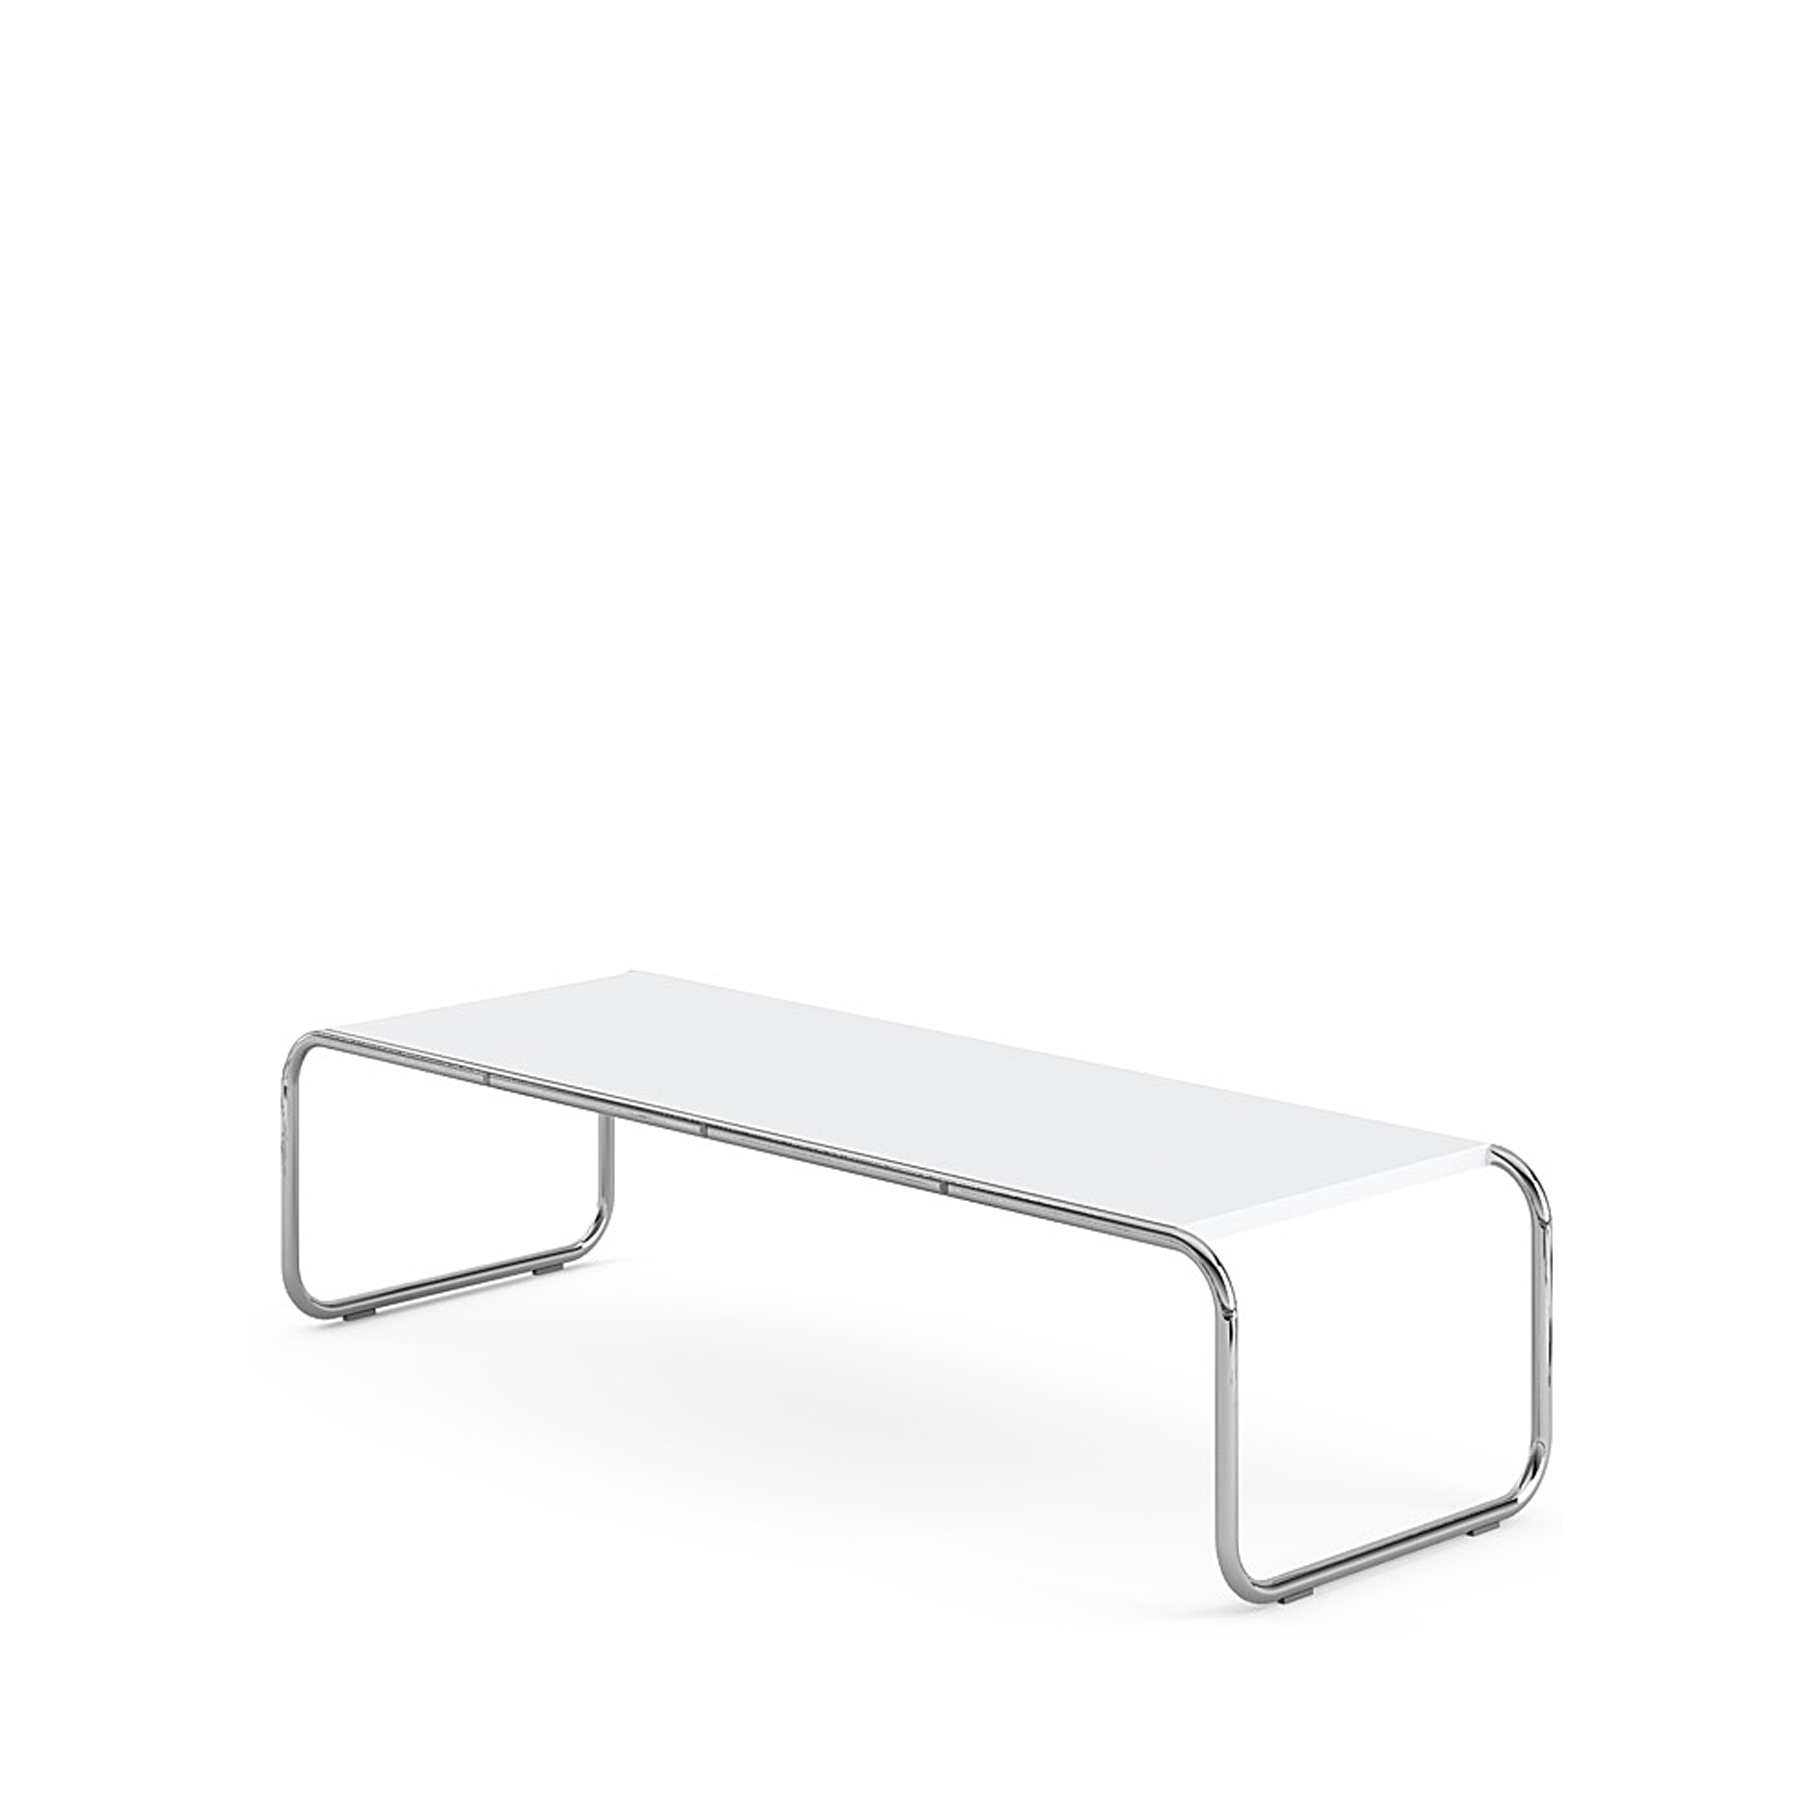 Knoll Beistelltisch Laccio weiss gross Top Result 50 Luxury Black and White Coffee Table Image 2017 Shdy7